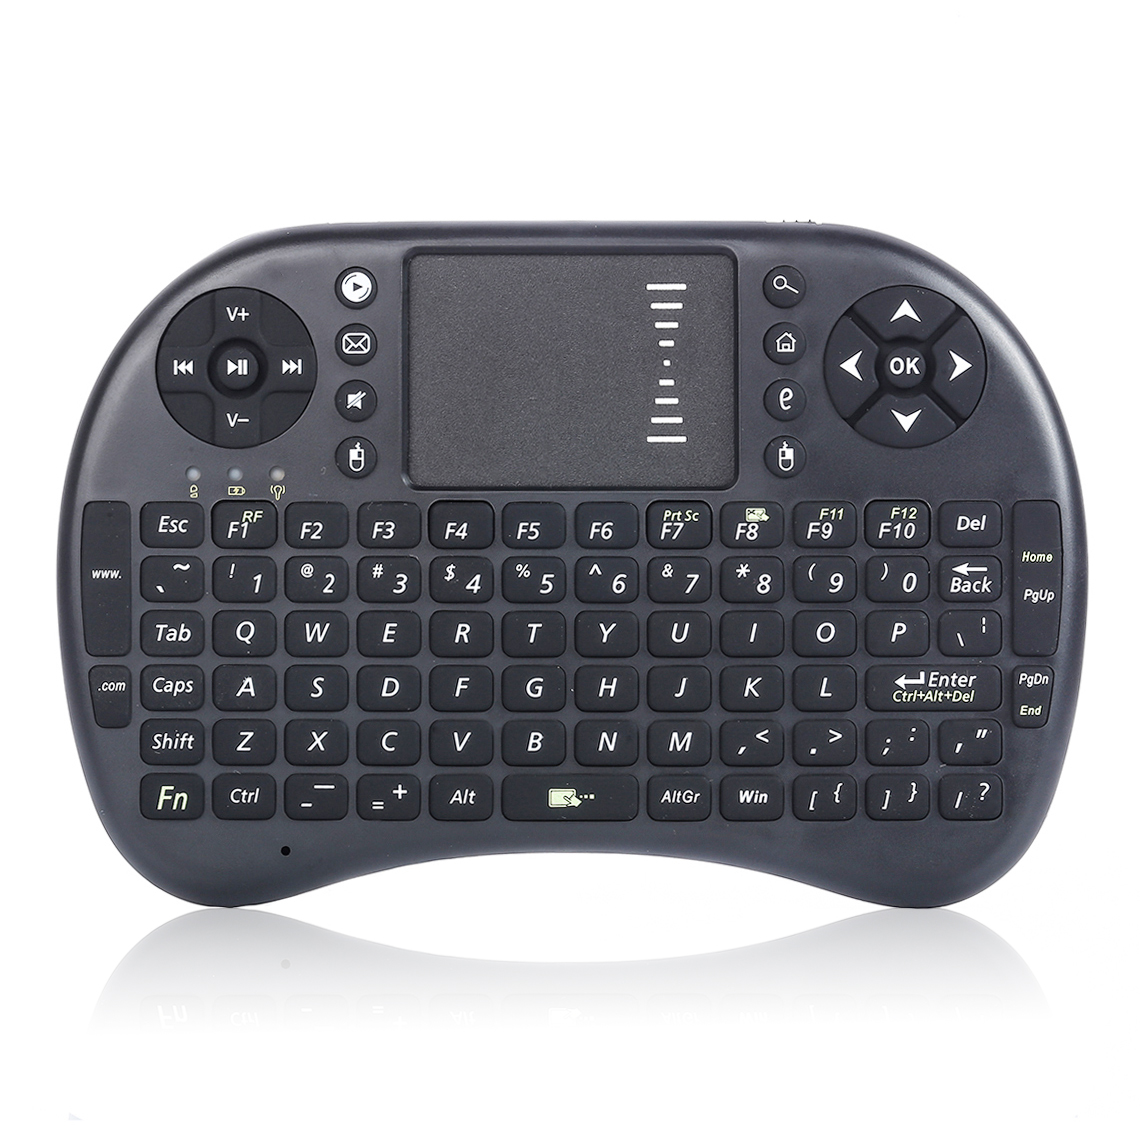 Original i8 Mini Wireless Keyboard 2.4G English Air Mouse QWERTY Keyboard Gaming USB Keyboard Touchpad For Android TV Box Laptop(China (Mainland))